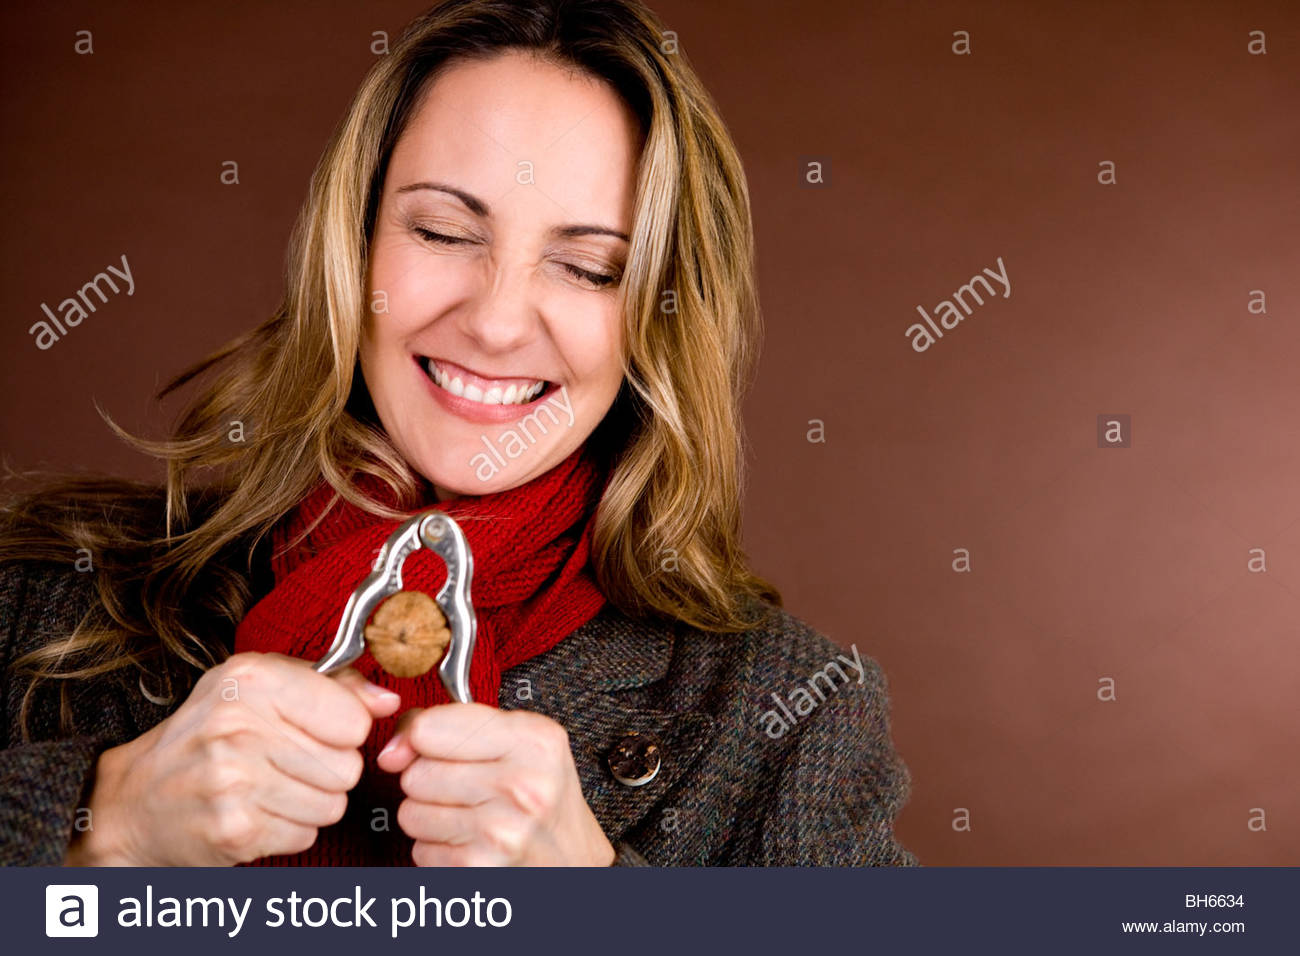 A mid adult woman cracking a nut - Stock Image